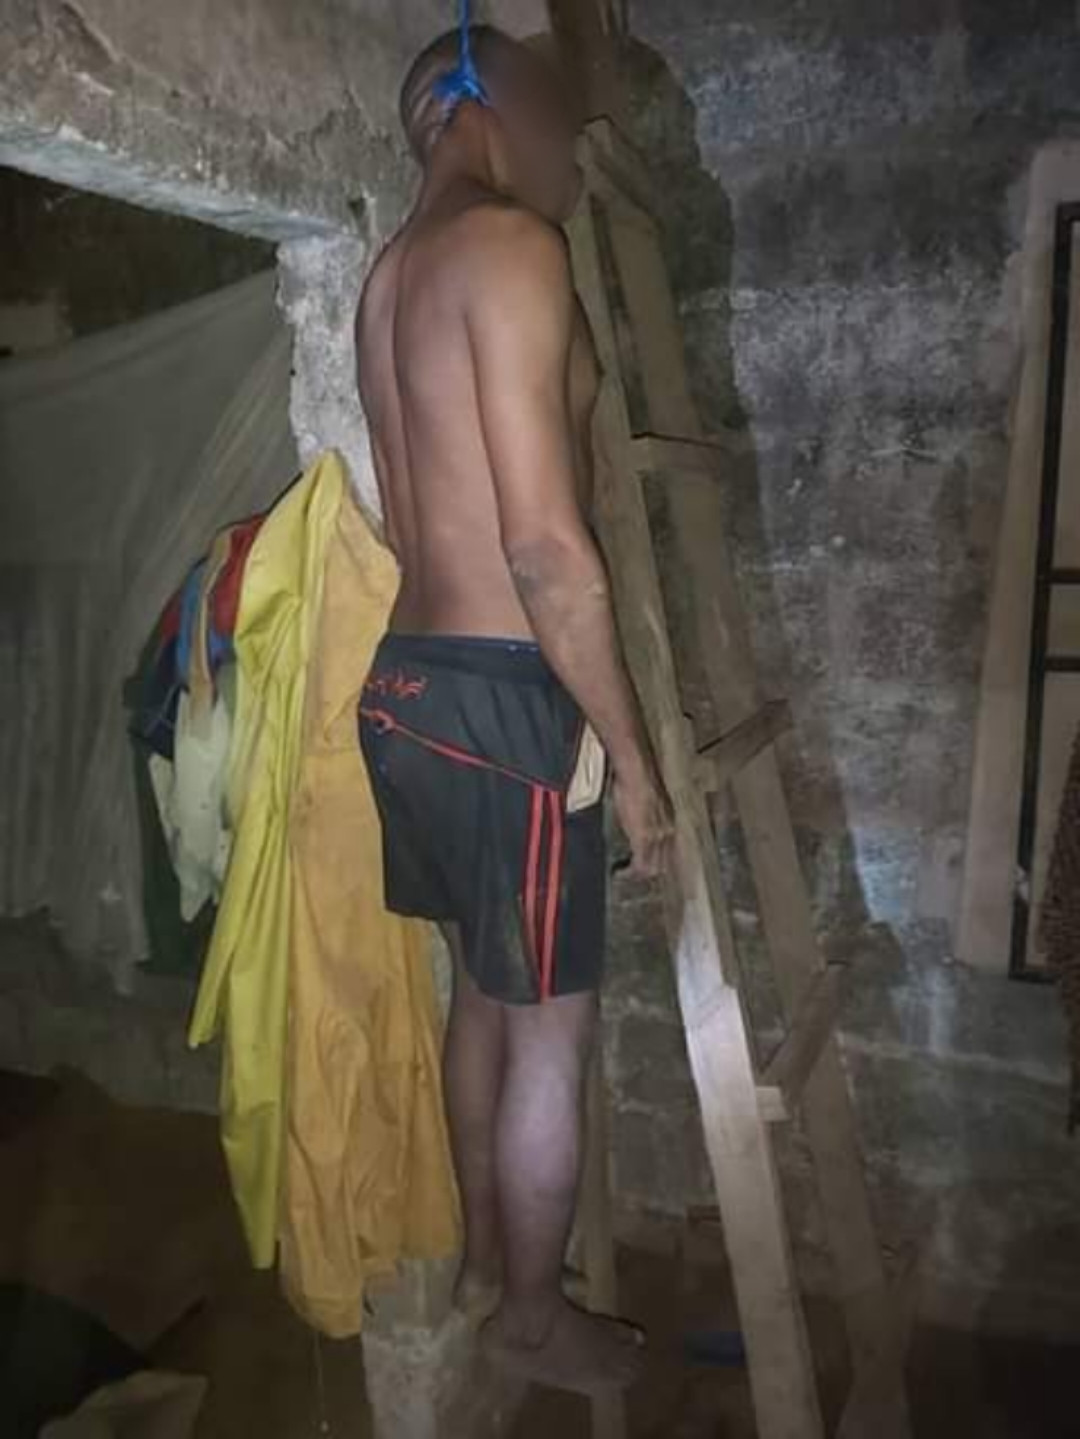 45-year-old man commits suicide in Imo (photos)